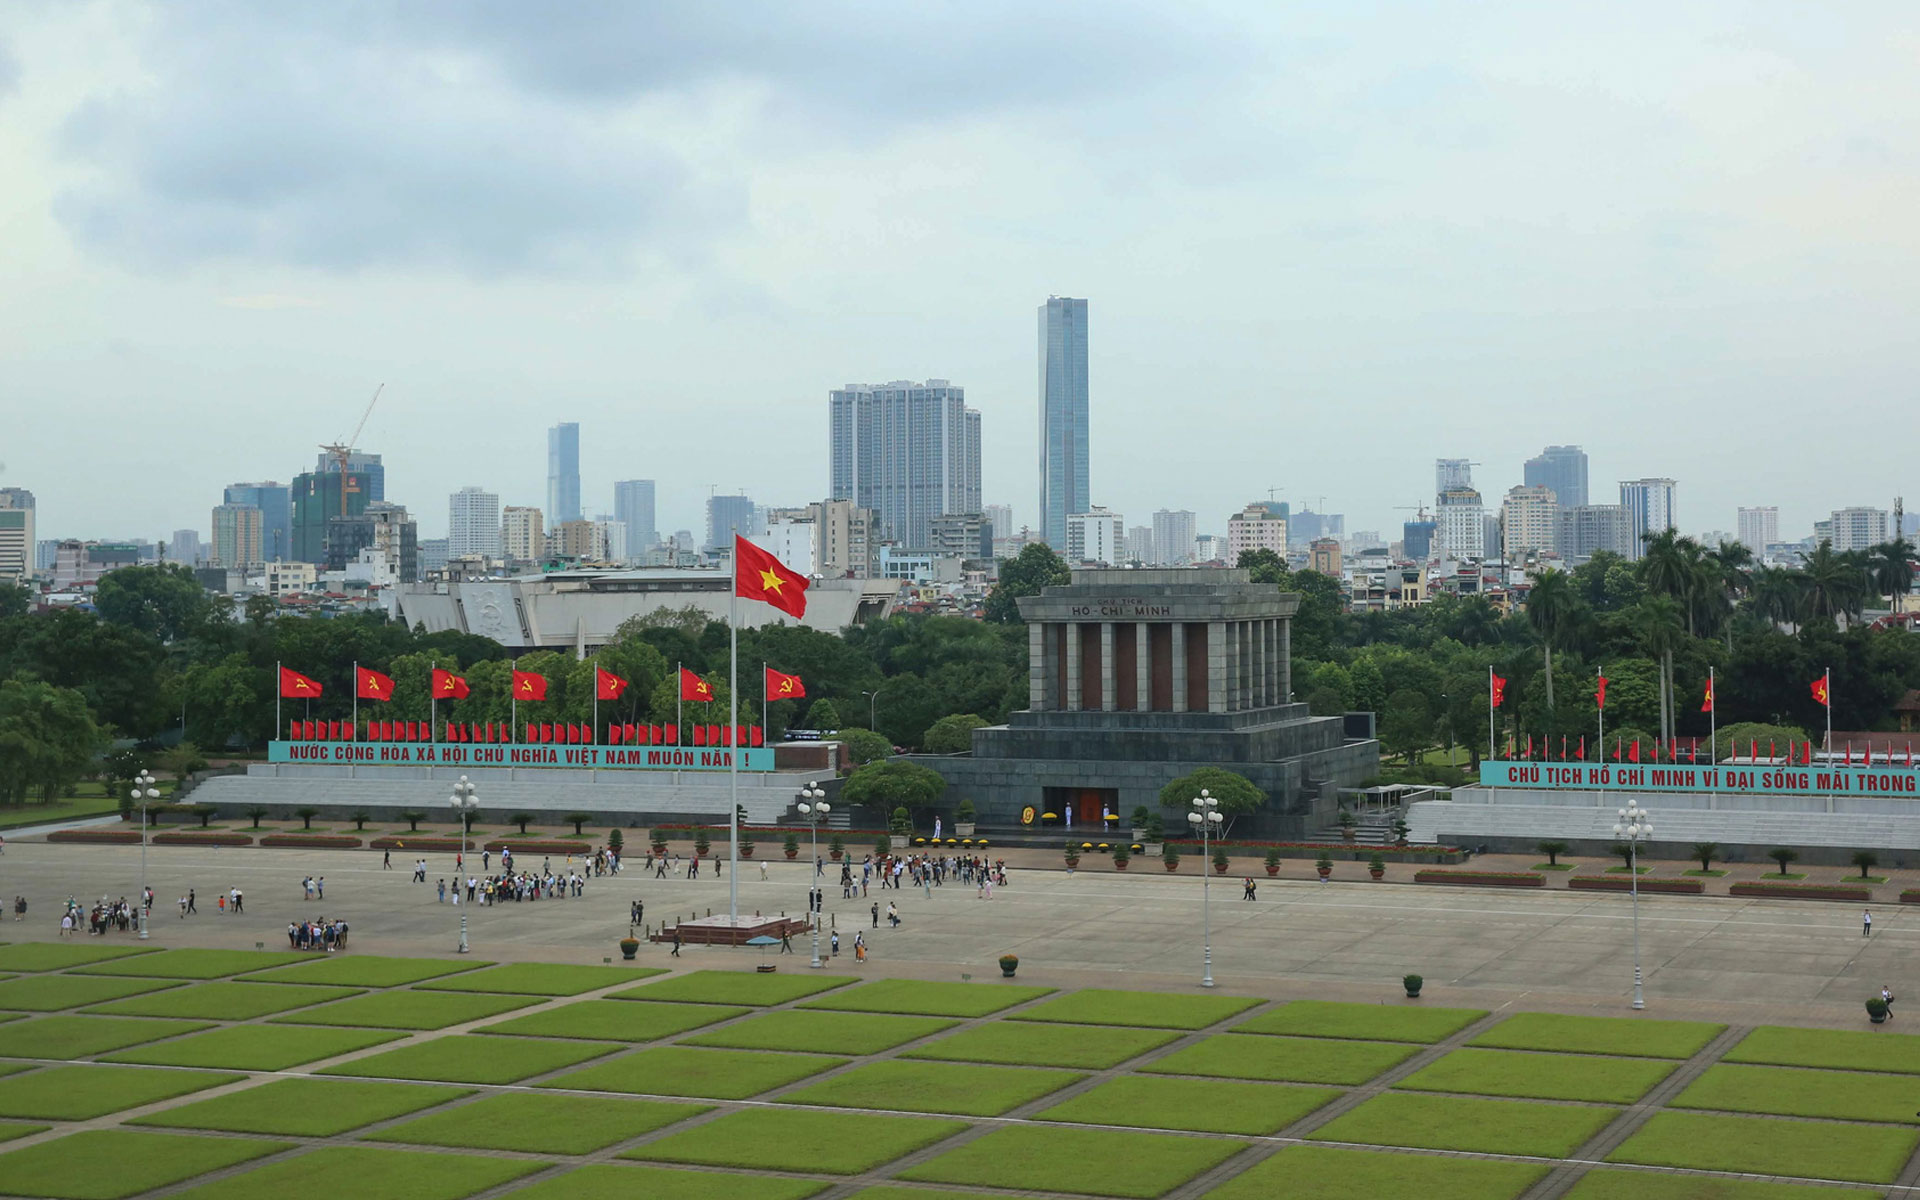 Ho Chi Minh Mausoleum from above